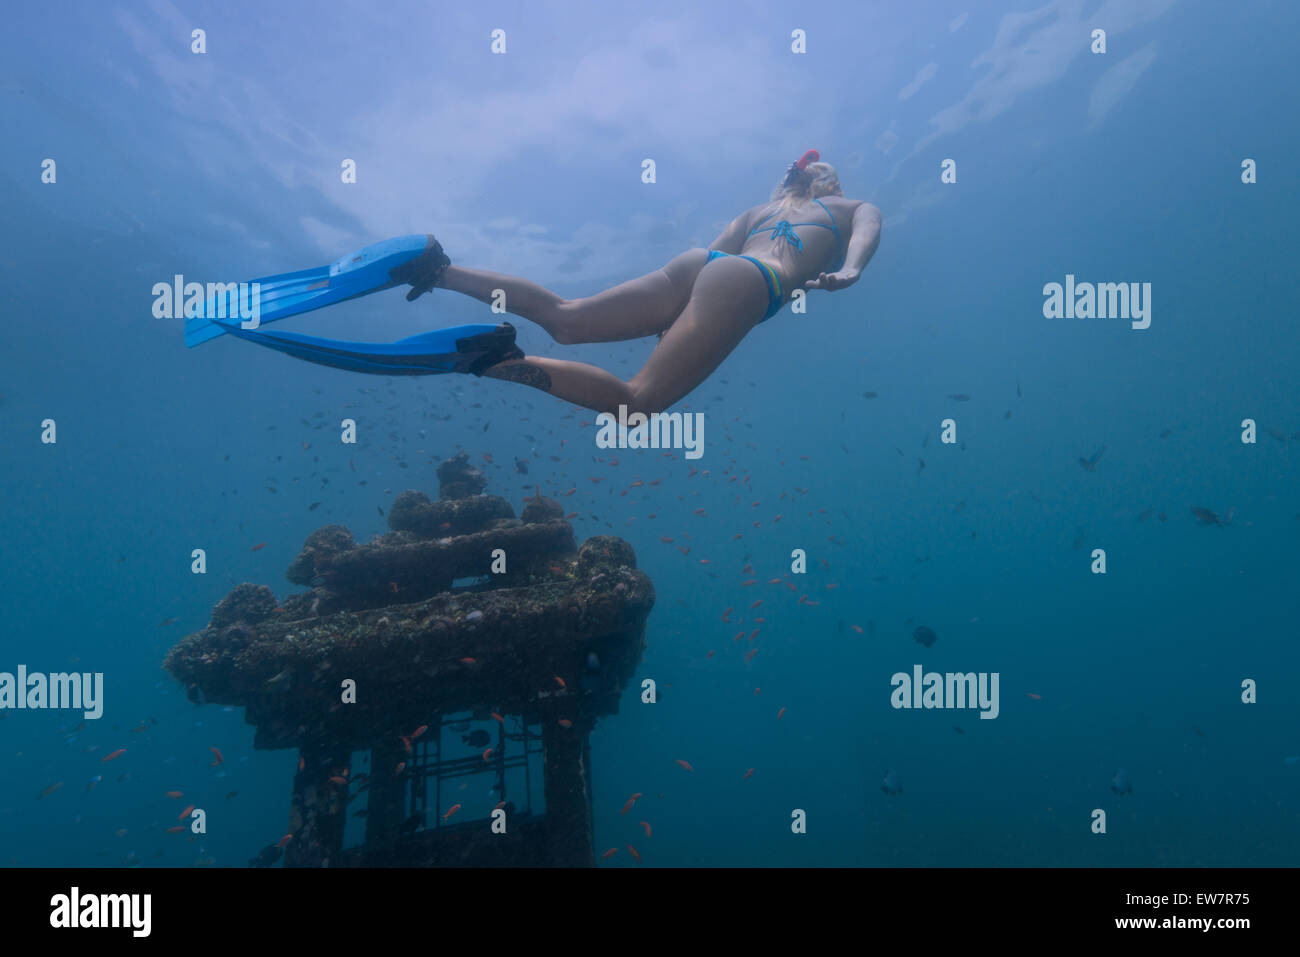 Woman snorkeling by a sunken temple, Bali, Indonesia - Stock Image